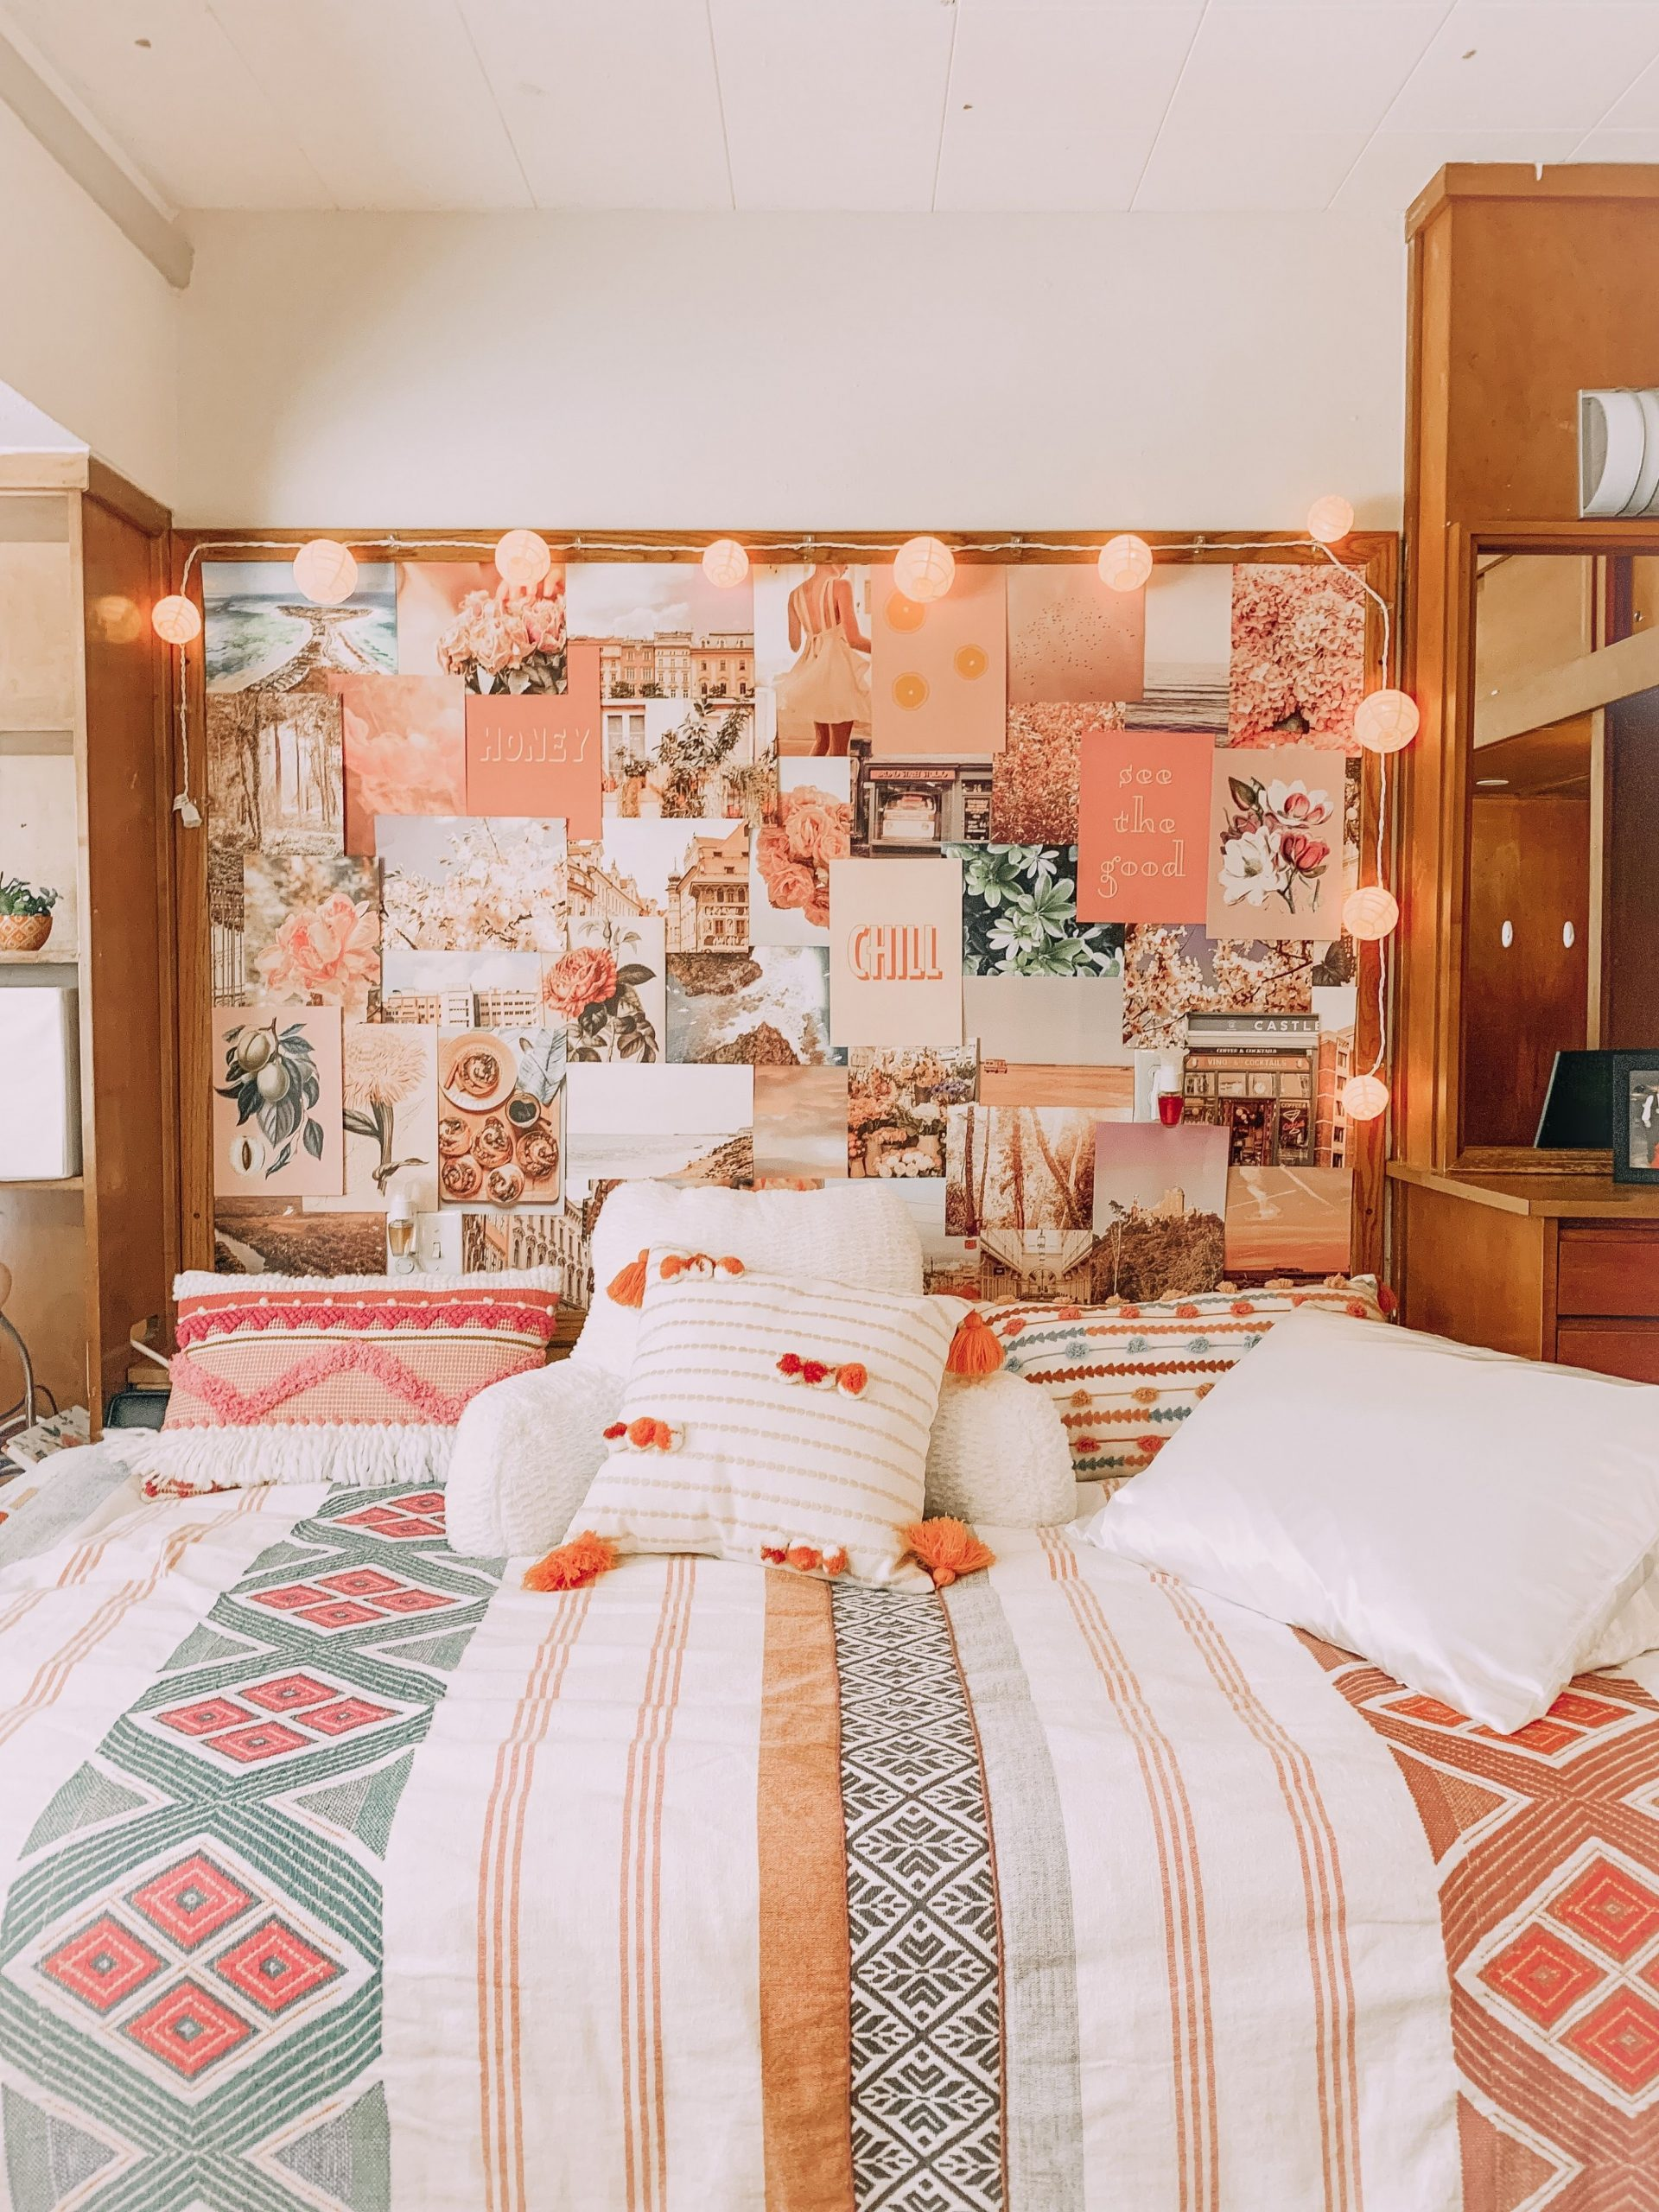 College dorm all students need this dormitory Quiz decoration This  - Bedroom Ideas Quiz